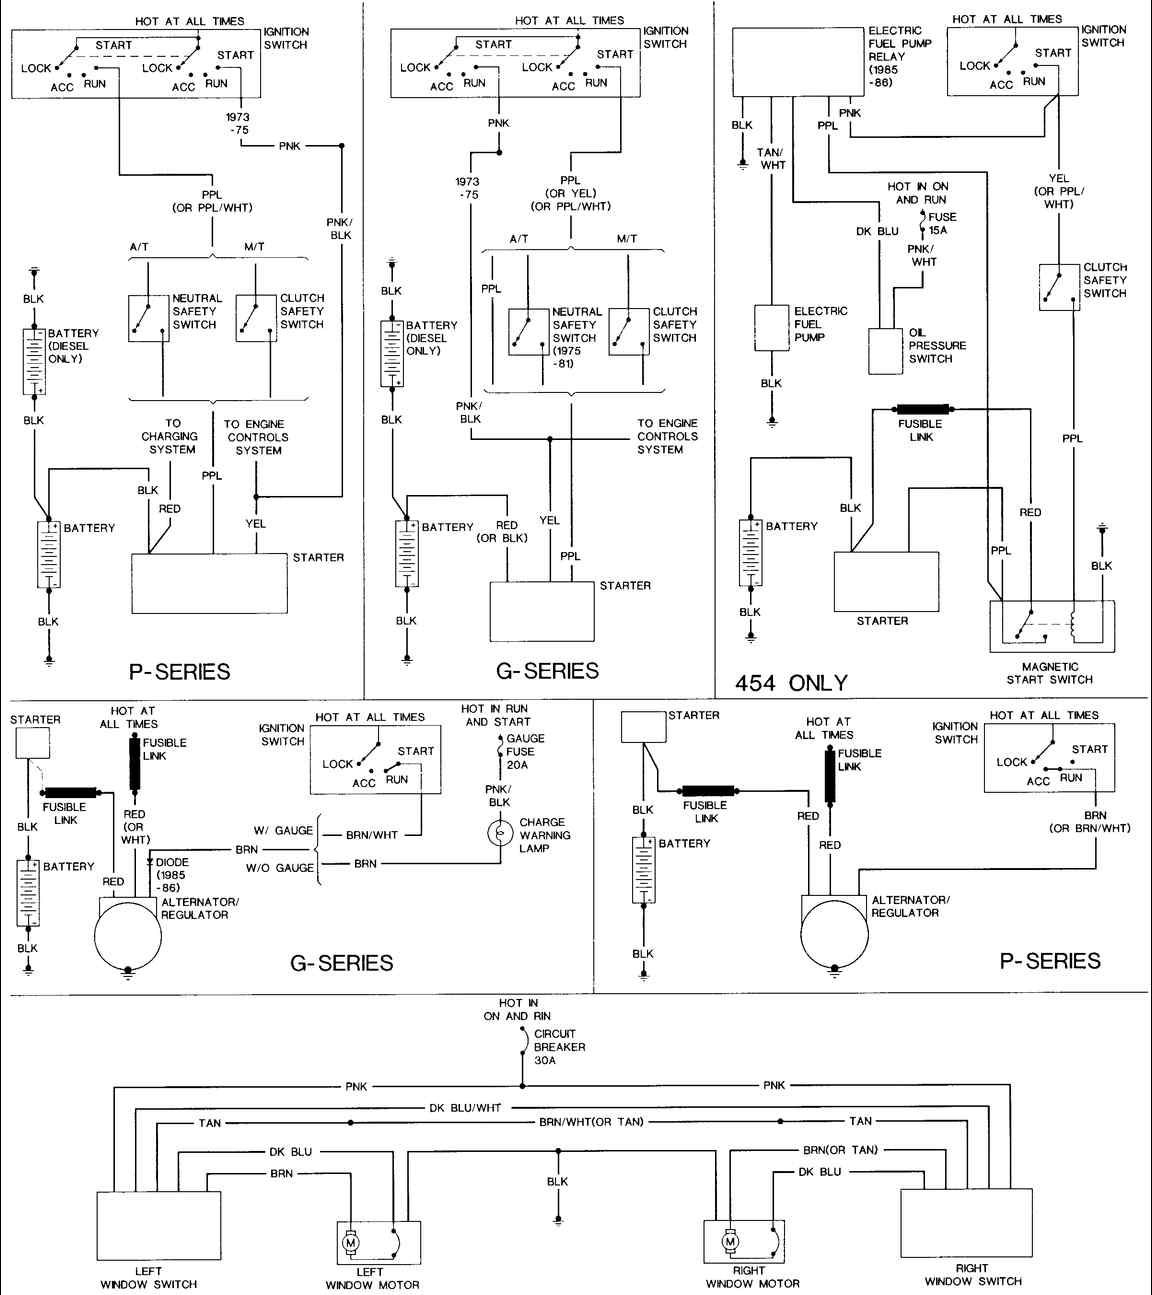 0c73623a181dc376dbb4777e2029d285 85 chevy truck wiring diagram 85 chevy van the steering column Chevy Engine Wiring Harness at gsmx.co